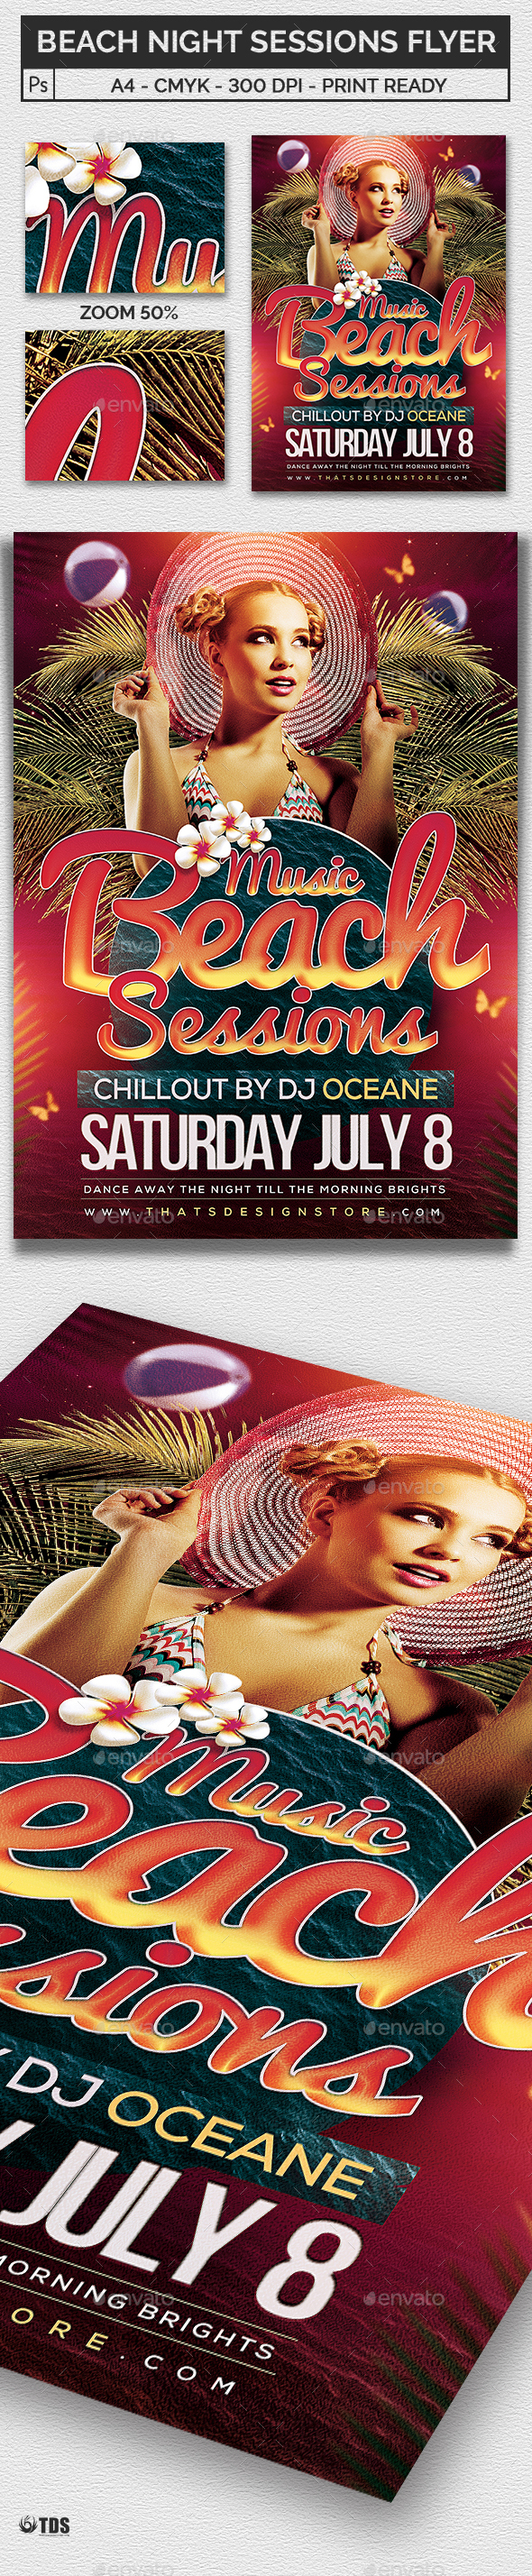 Beach Night Sessions Flyer Template - Clubs & Parties Events